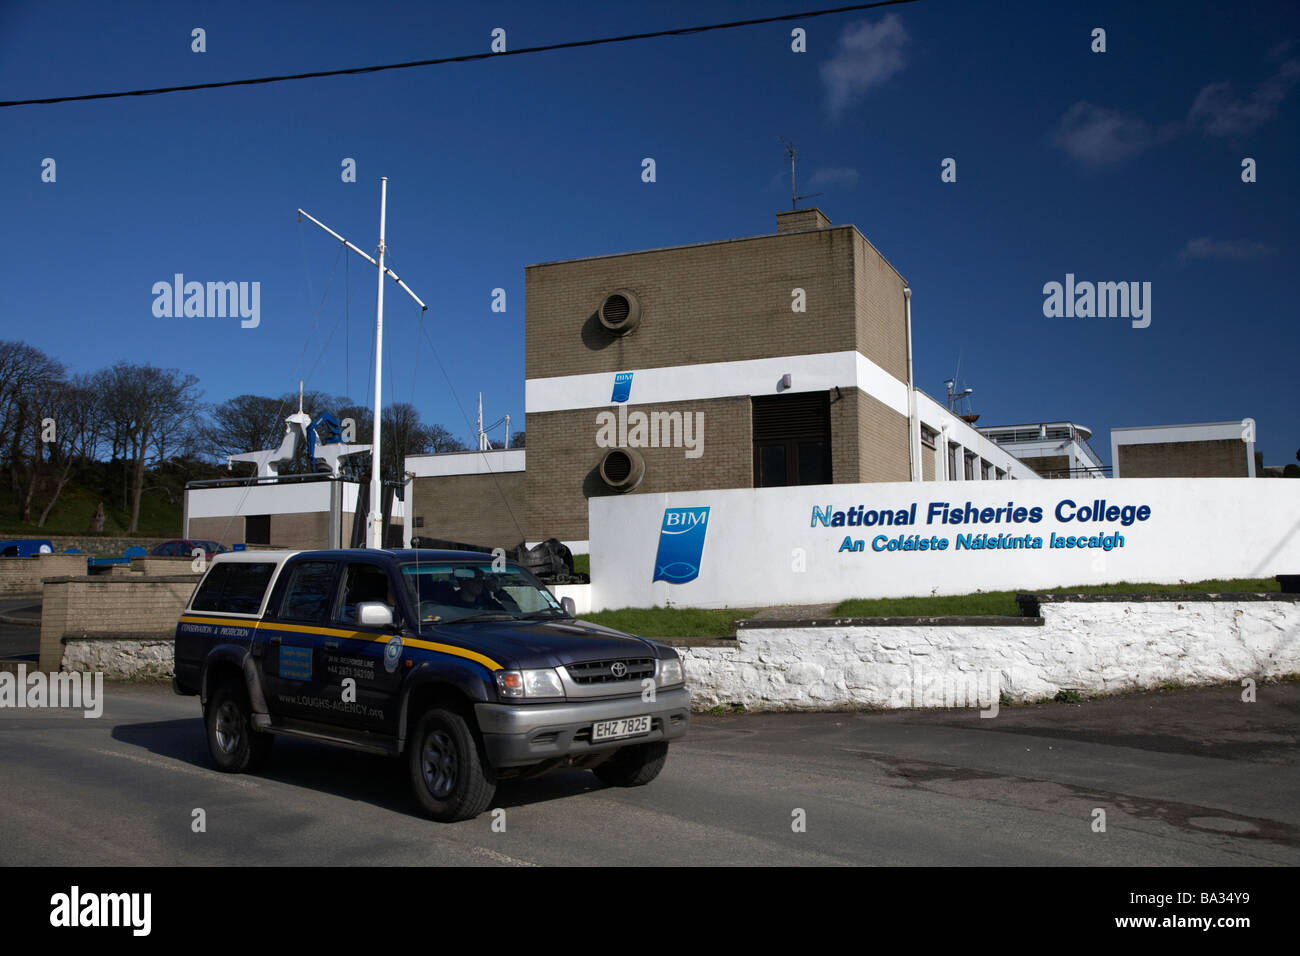 loughs agency 4x4 vehicle passing The National Fisheries College Greencastle County Donegal Republic of Ireland - Stock Image